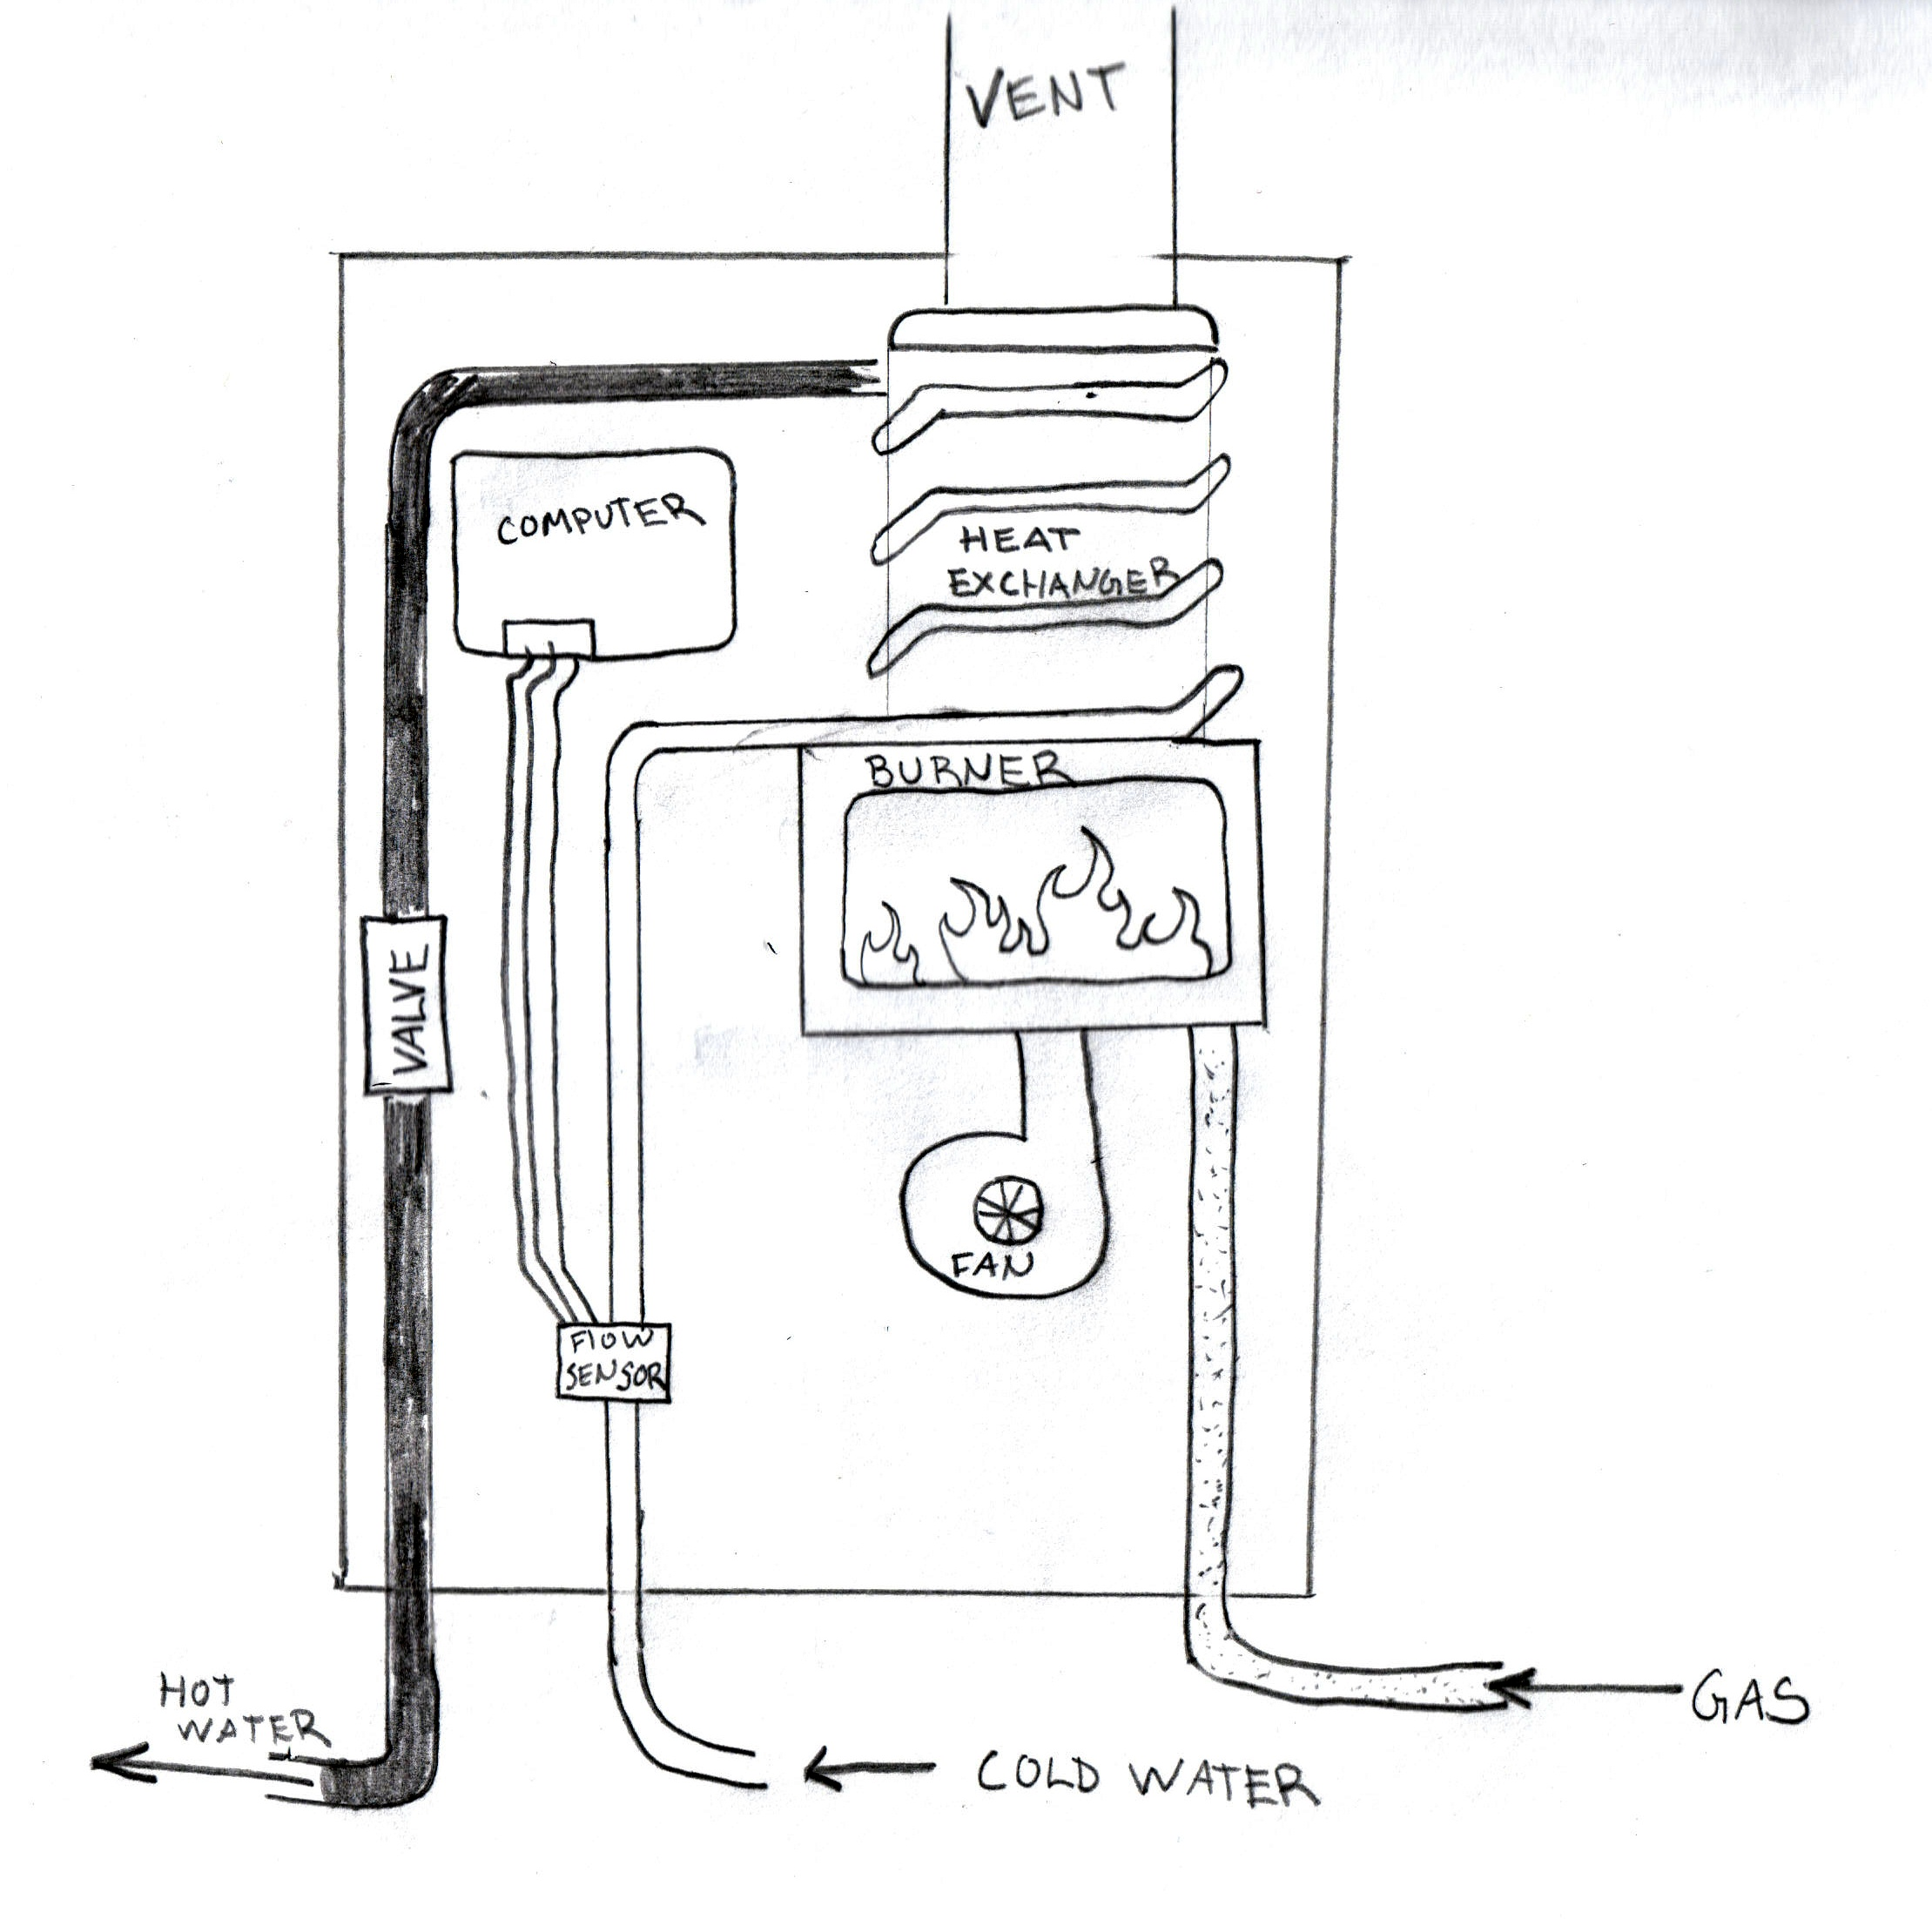 January 2014 The House Explained 20 Amp Outlet On 15 Circuit Internachi Inspection Forum Illustrated By Jay Marlette